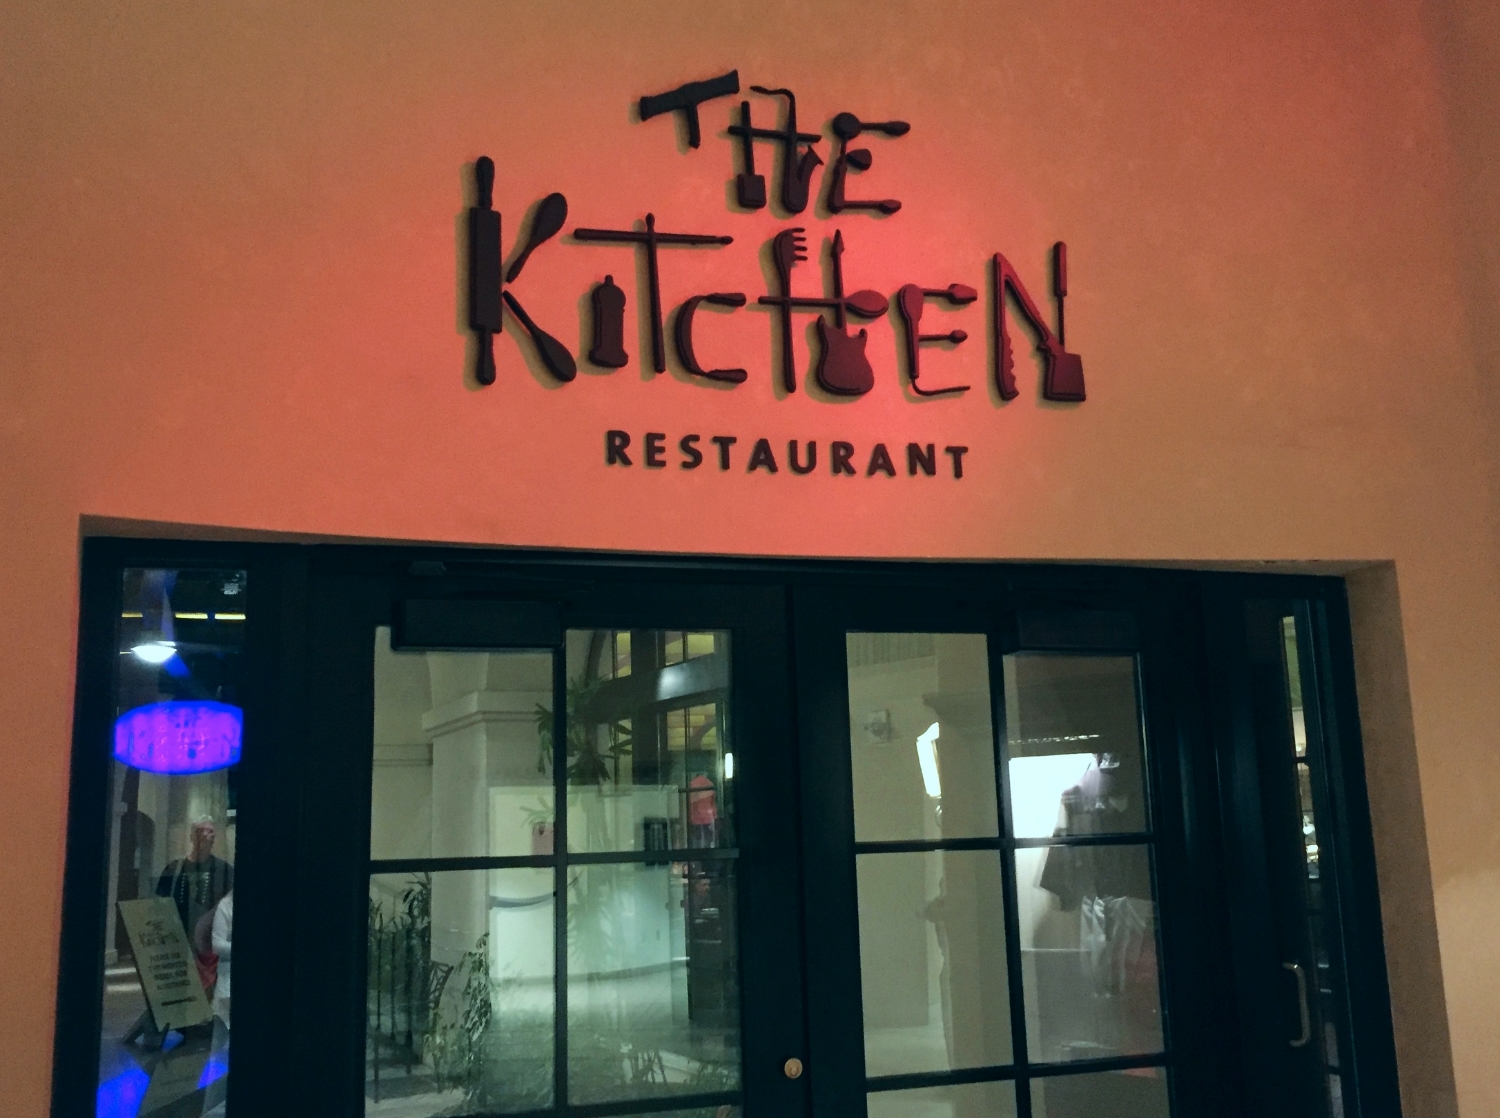 The Kitchen Restaurant in Hard Rock Hotel Orlando